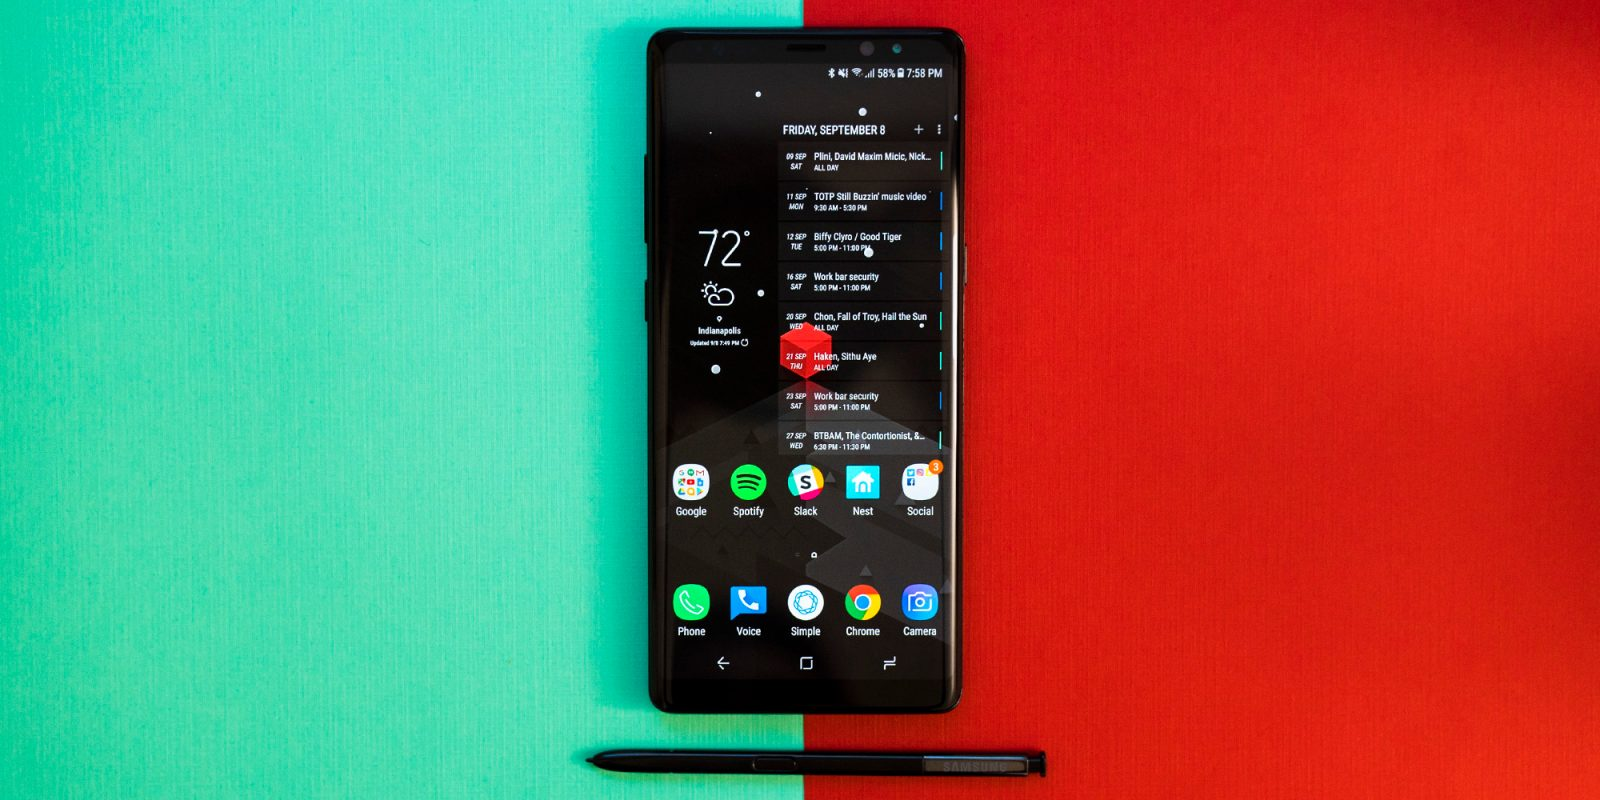 Samsung Galaxy Note 8: How to theme the user interface